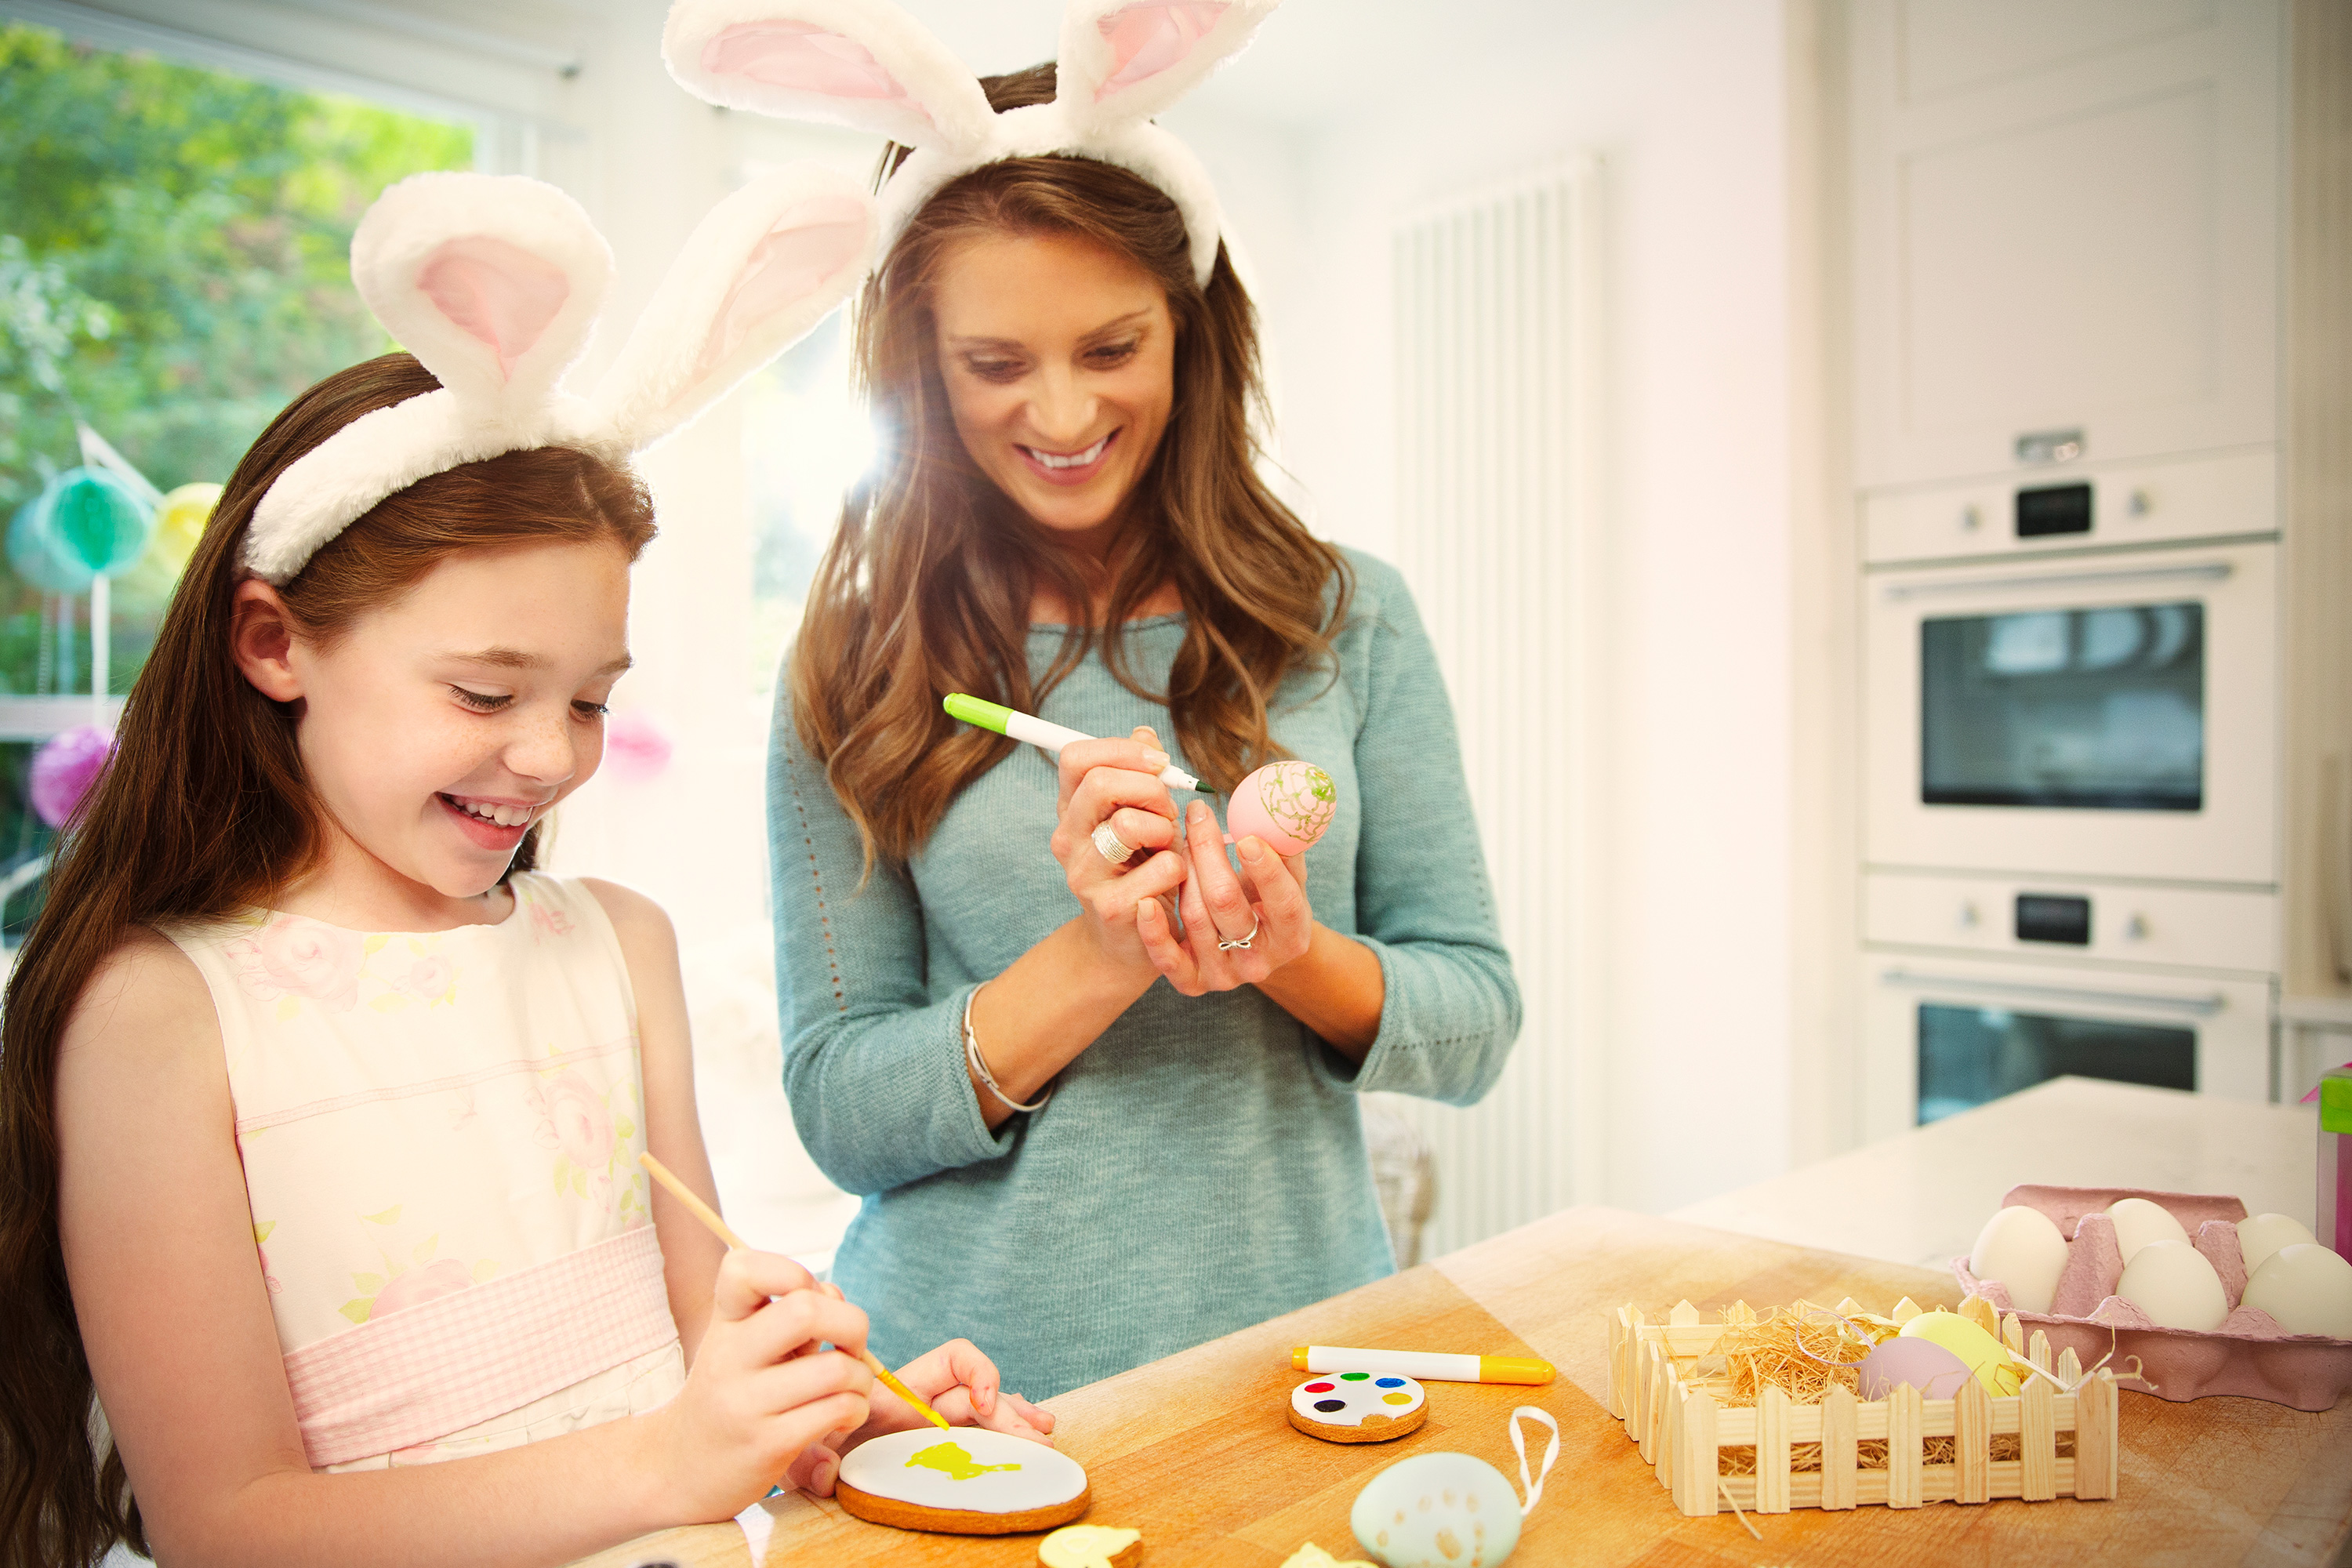 mom and daughter decorating Easter eggs